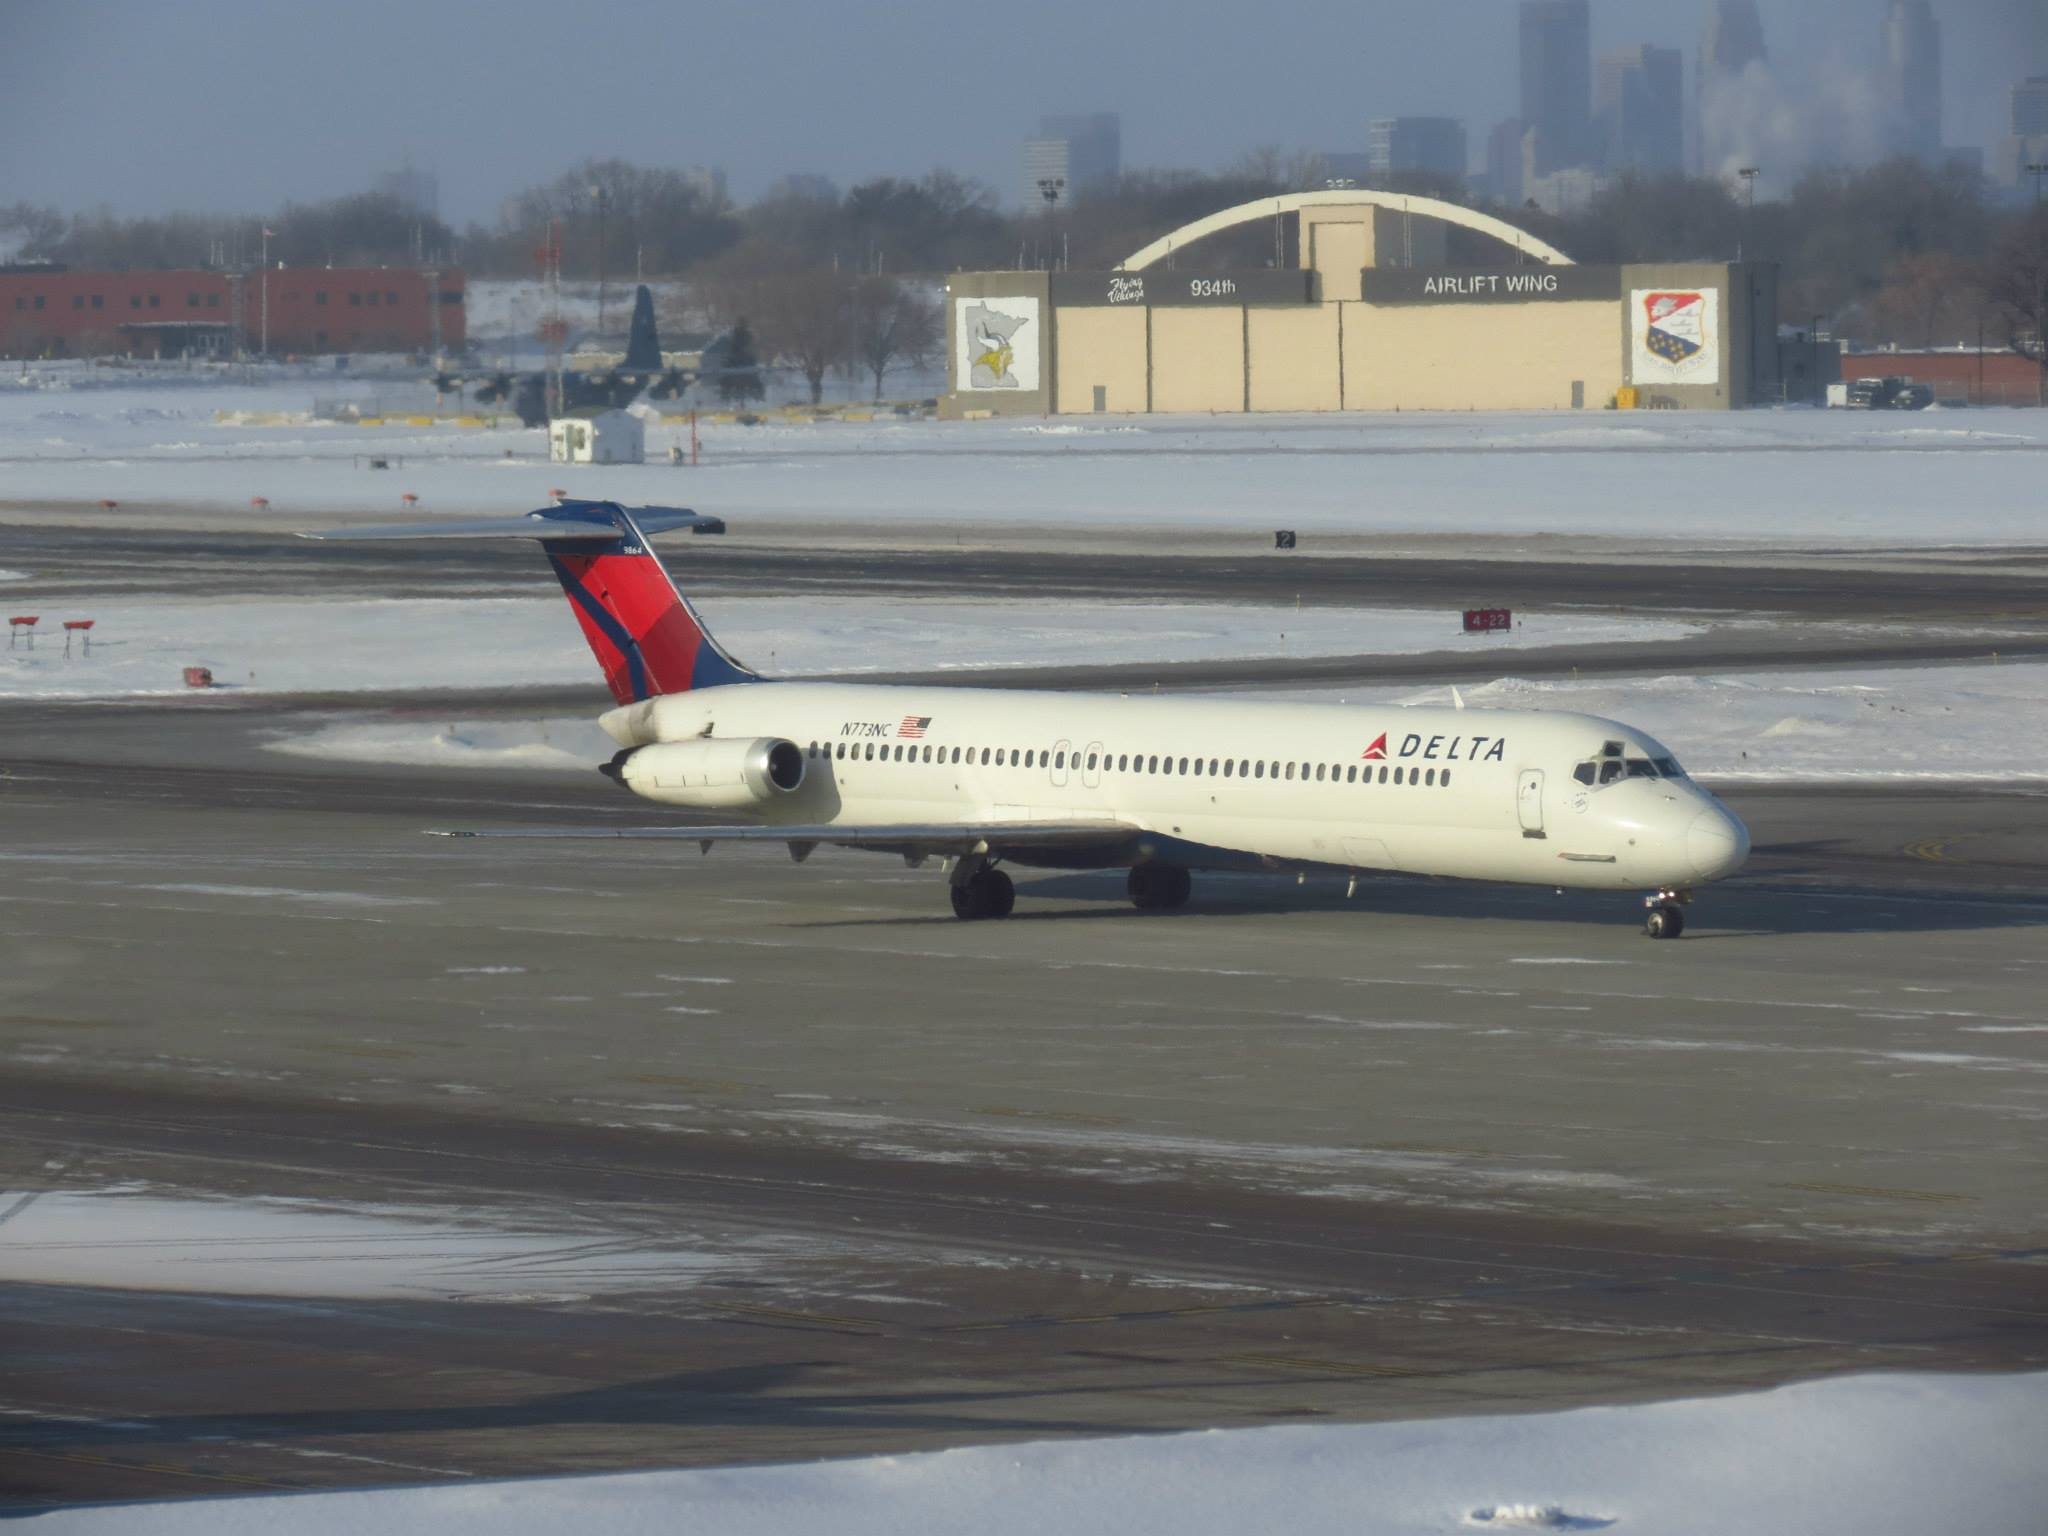 Delta retires its last DC 9 airliners which spurred travel since 2048x1536